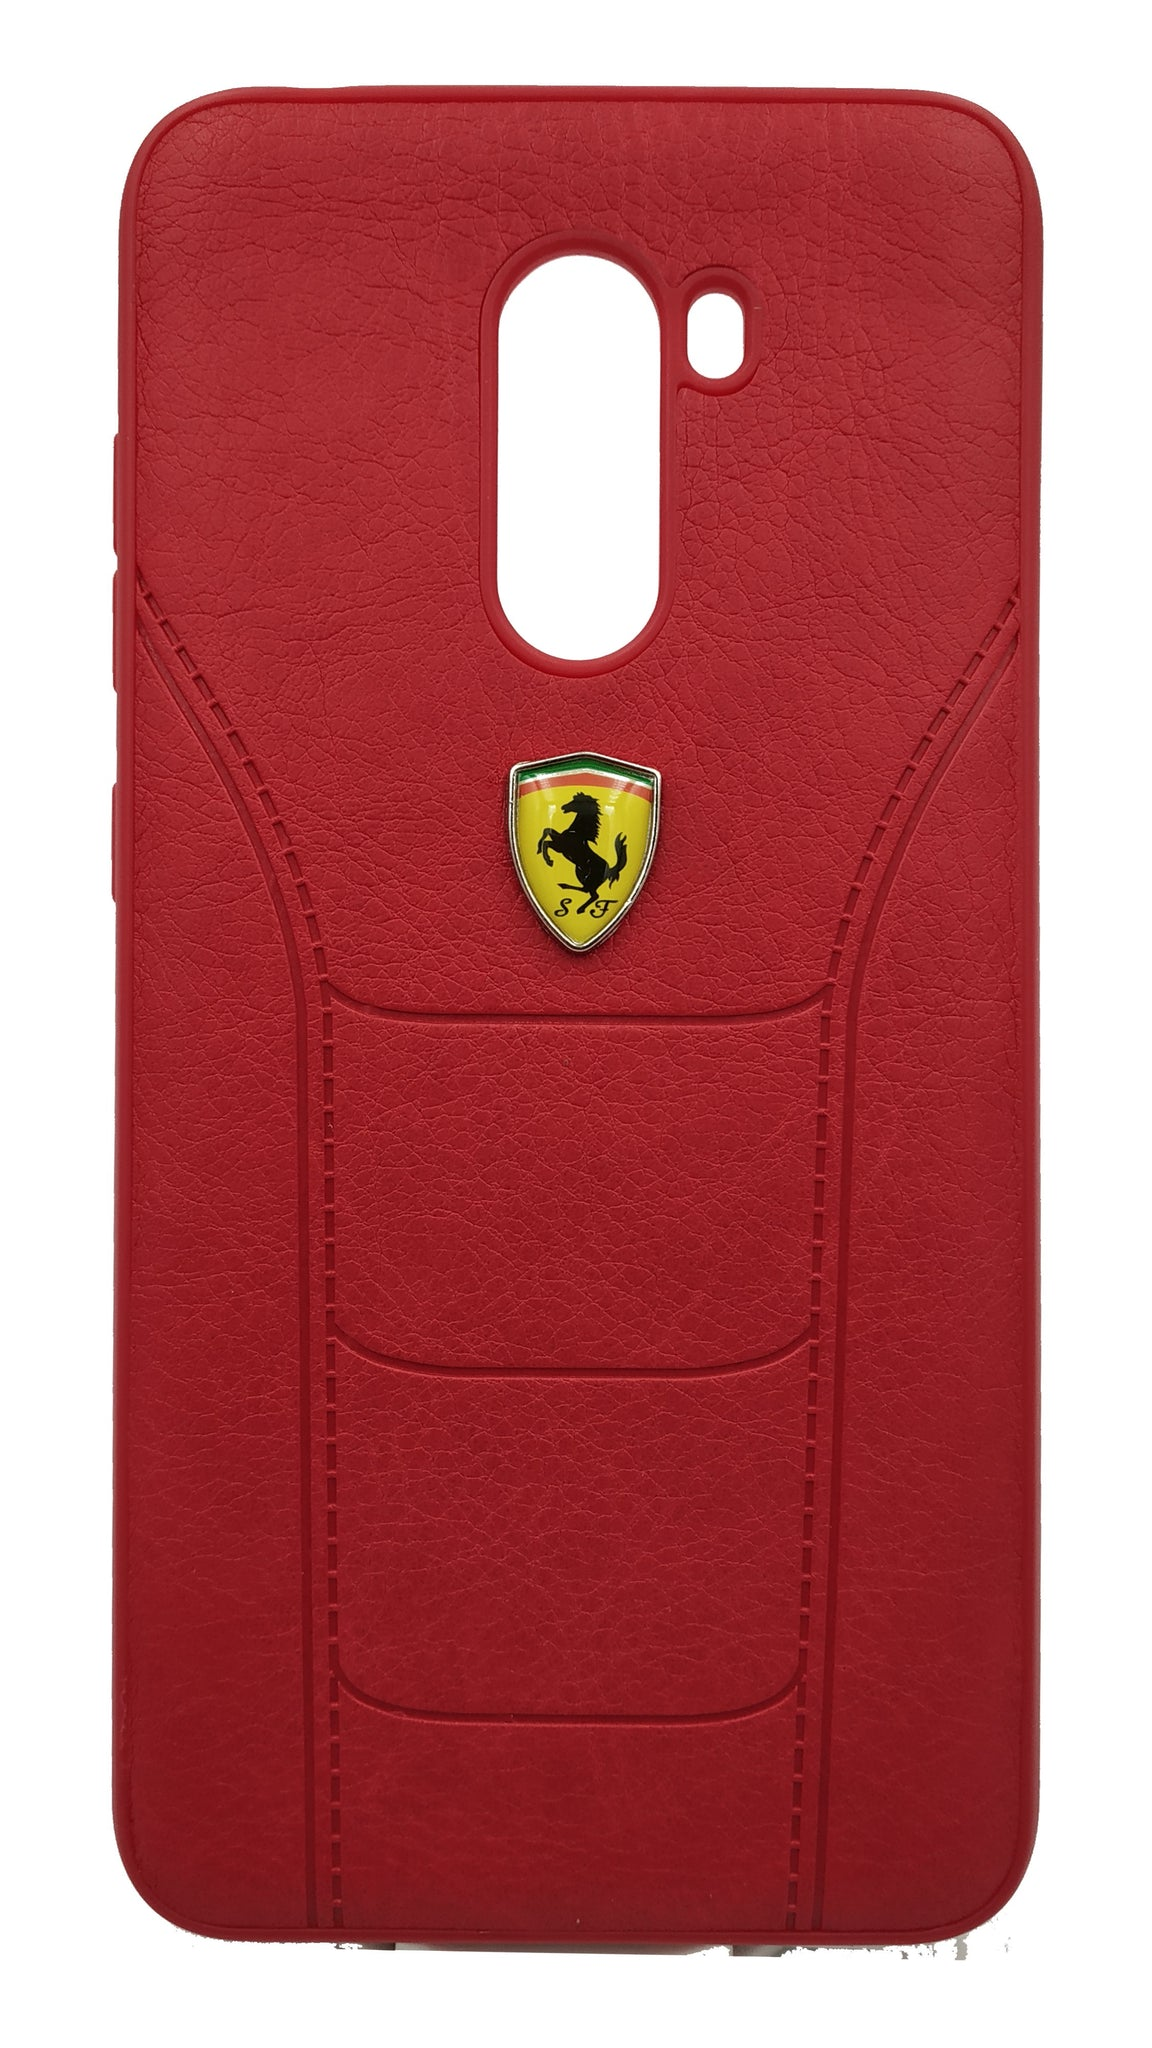 size 40 0411b 0fdd4 Buy POCO F1 Ferrari Leather Back Case Red Online [UPTO 30% OFF]